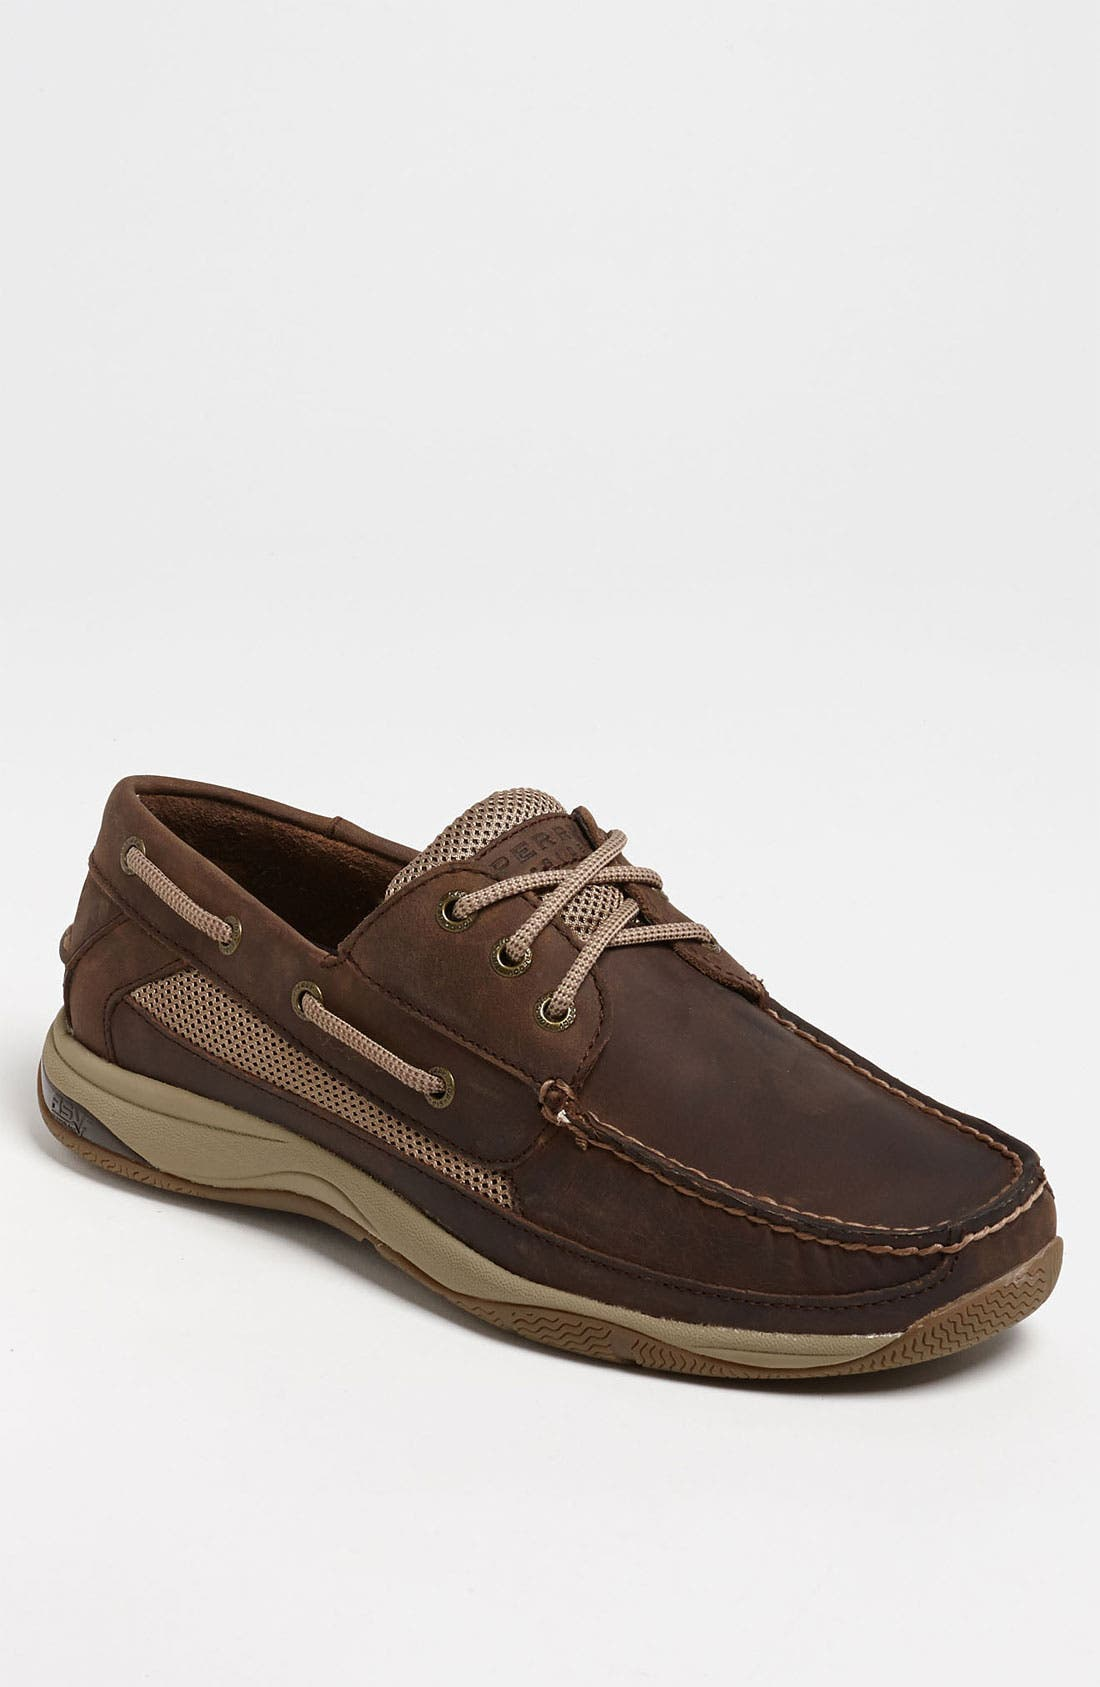 Alternate Image 1 Selected - Sperry Top-Sider® 'Billfish' Boat Shoe